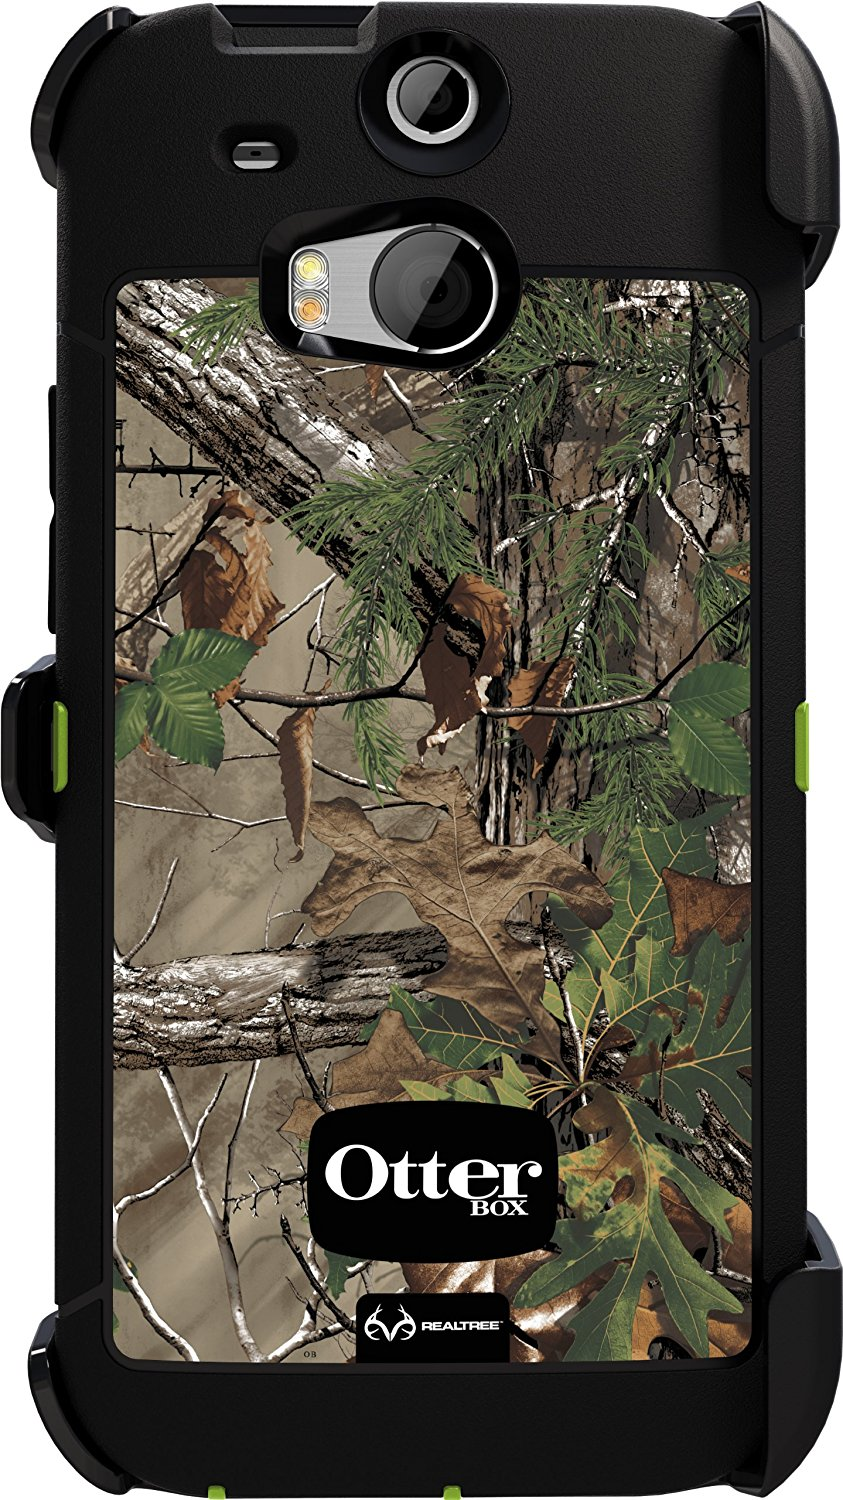 size 40 aa8aa 68da6 OtterBox Defender Case for HTC One M8 - Realtree Camo Xtra Green